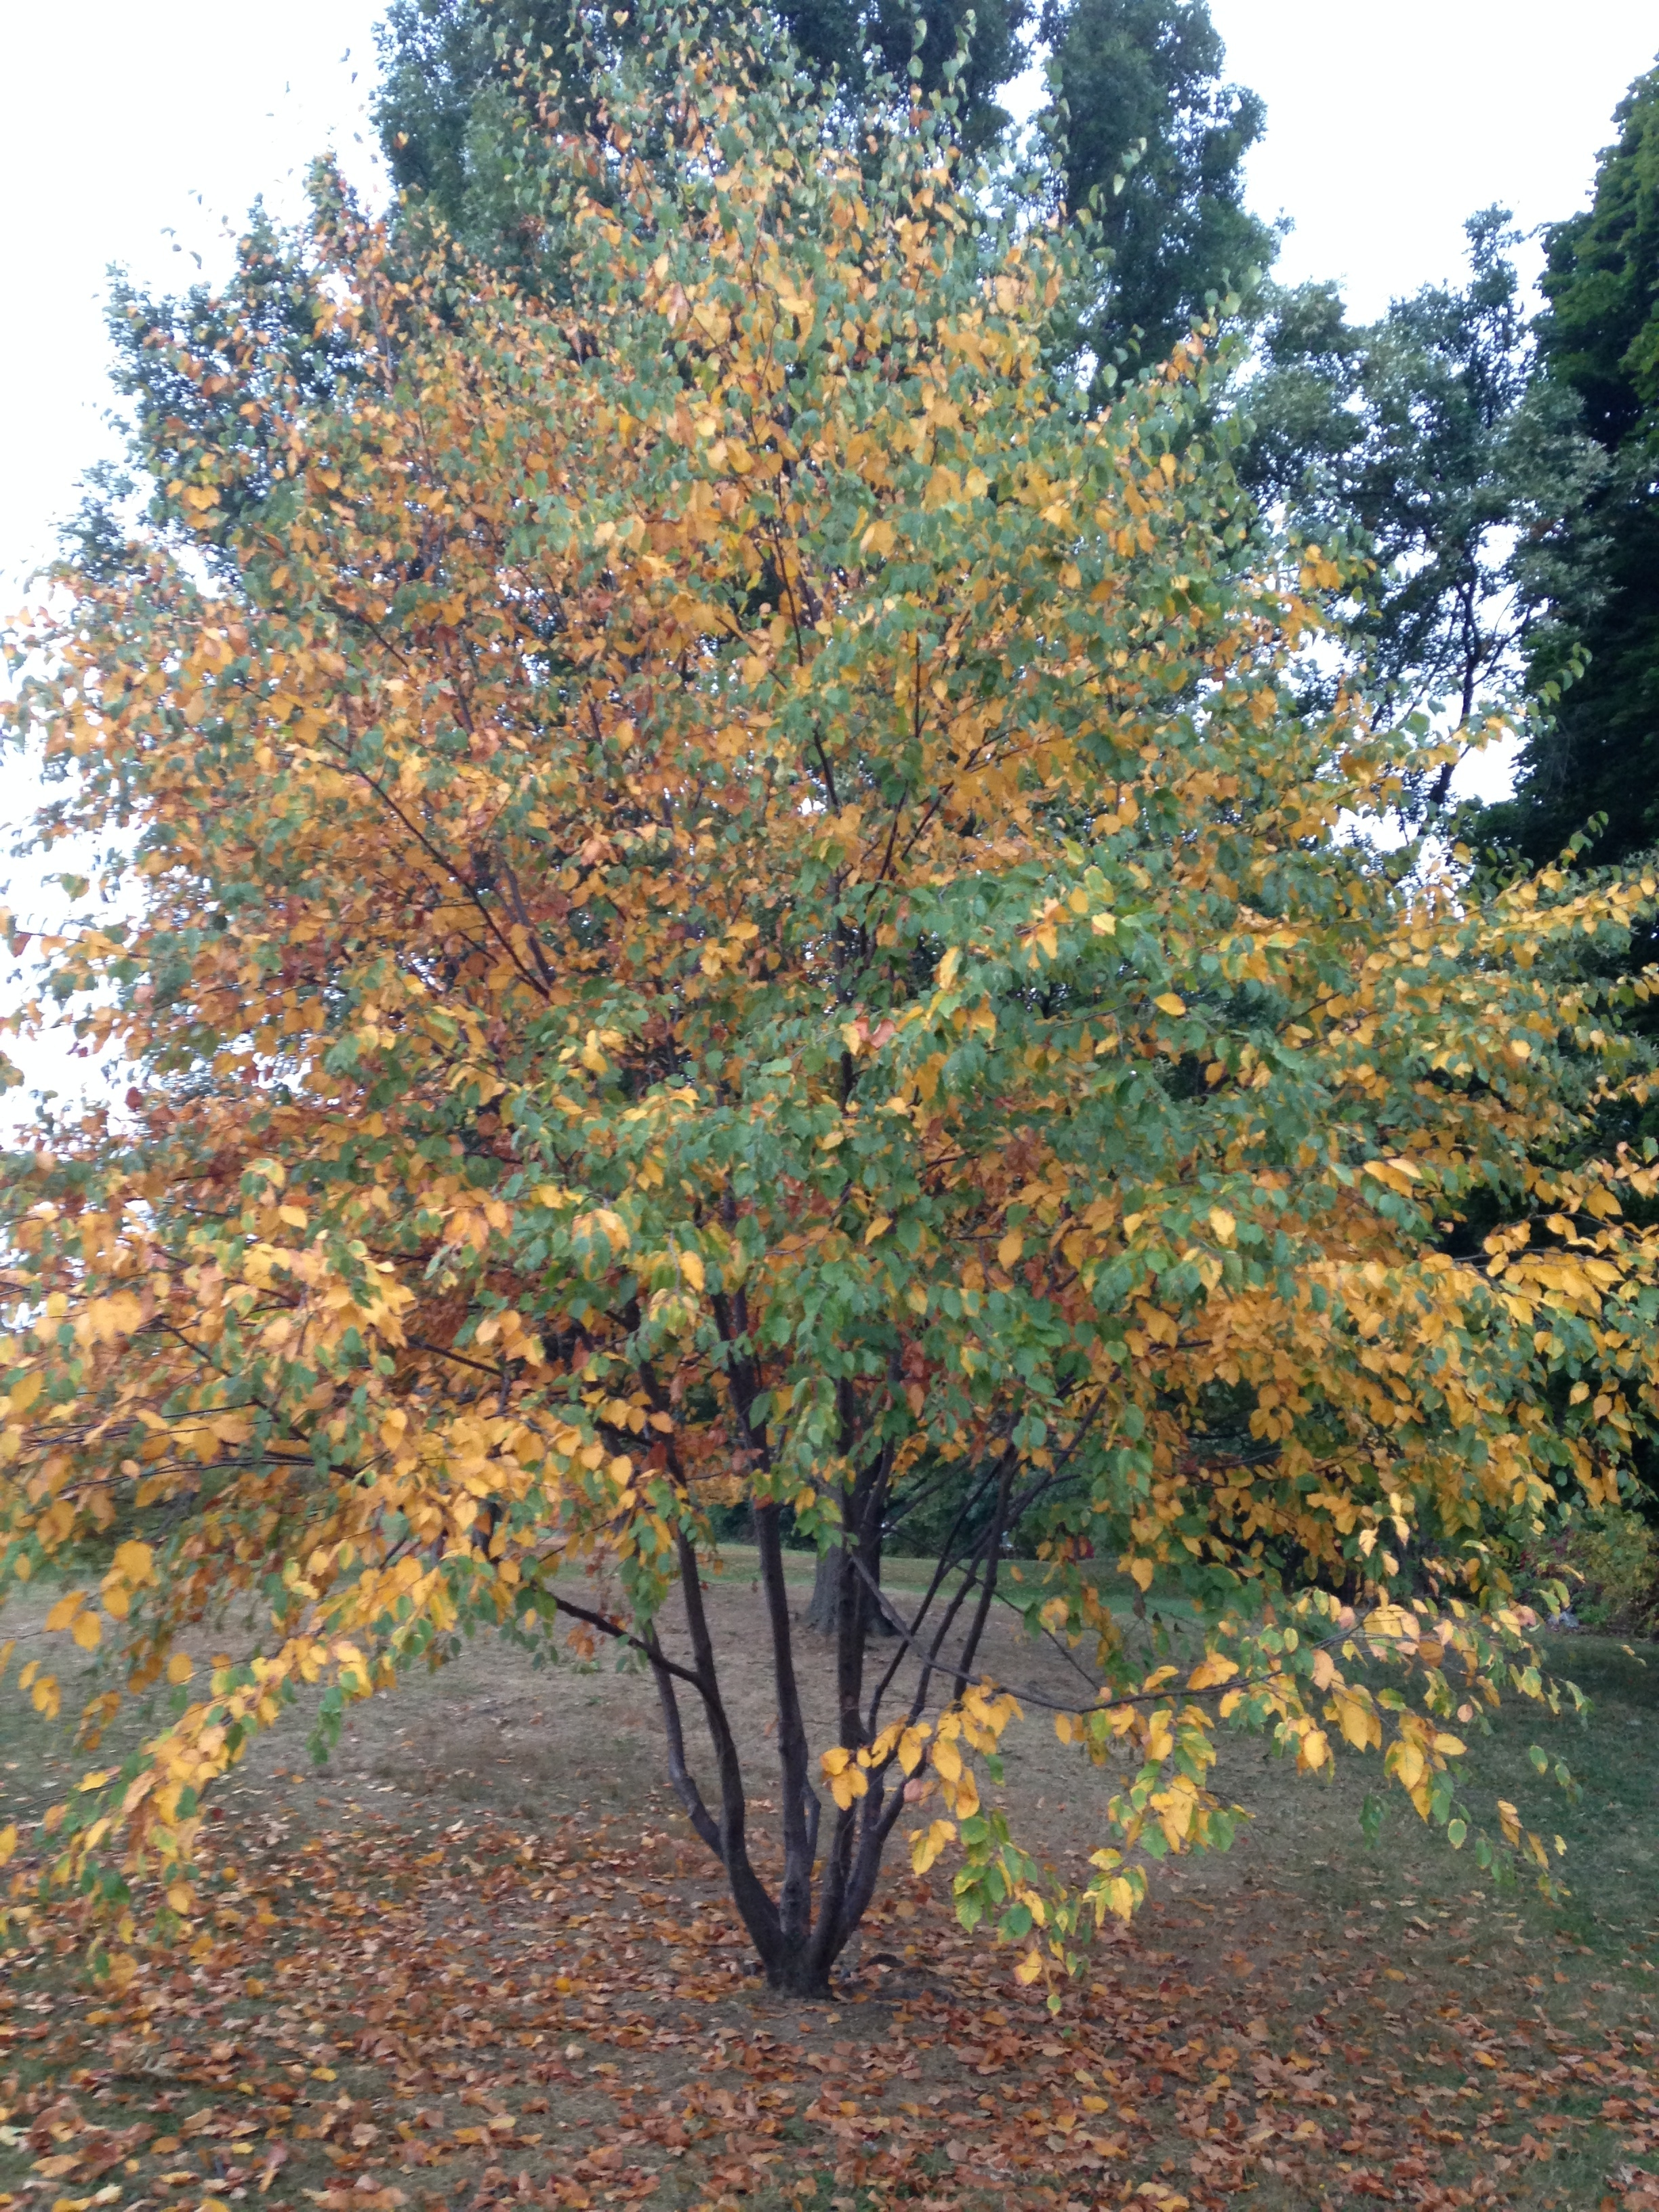 A Young Black Birch Tree in Early Fall